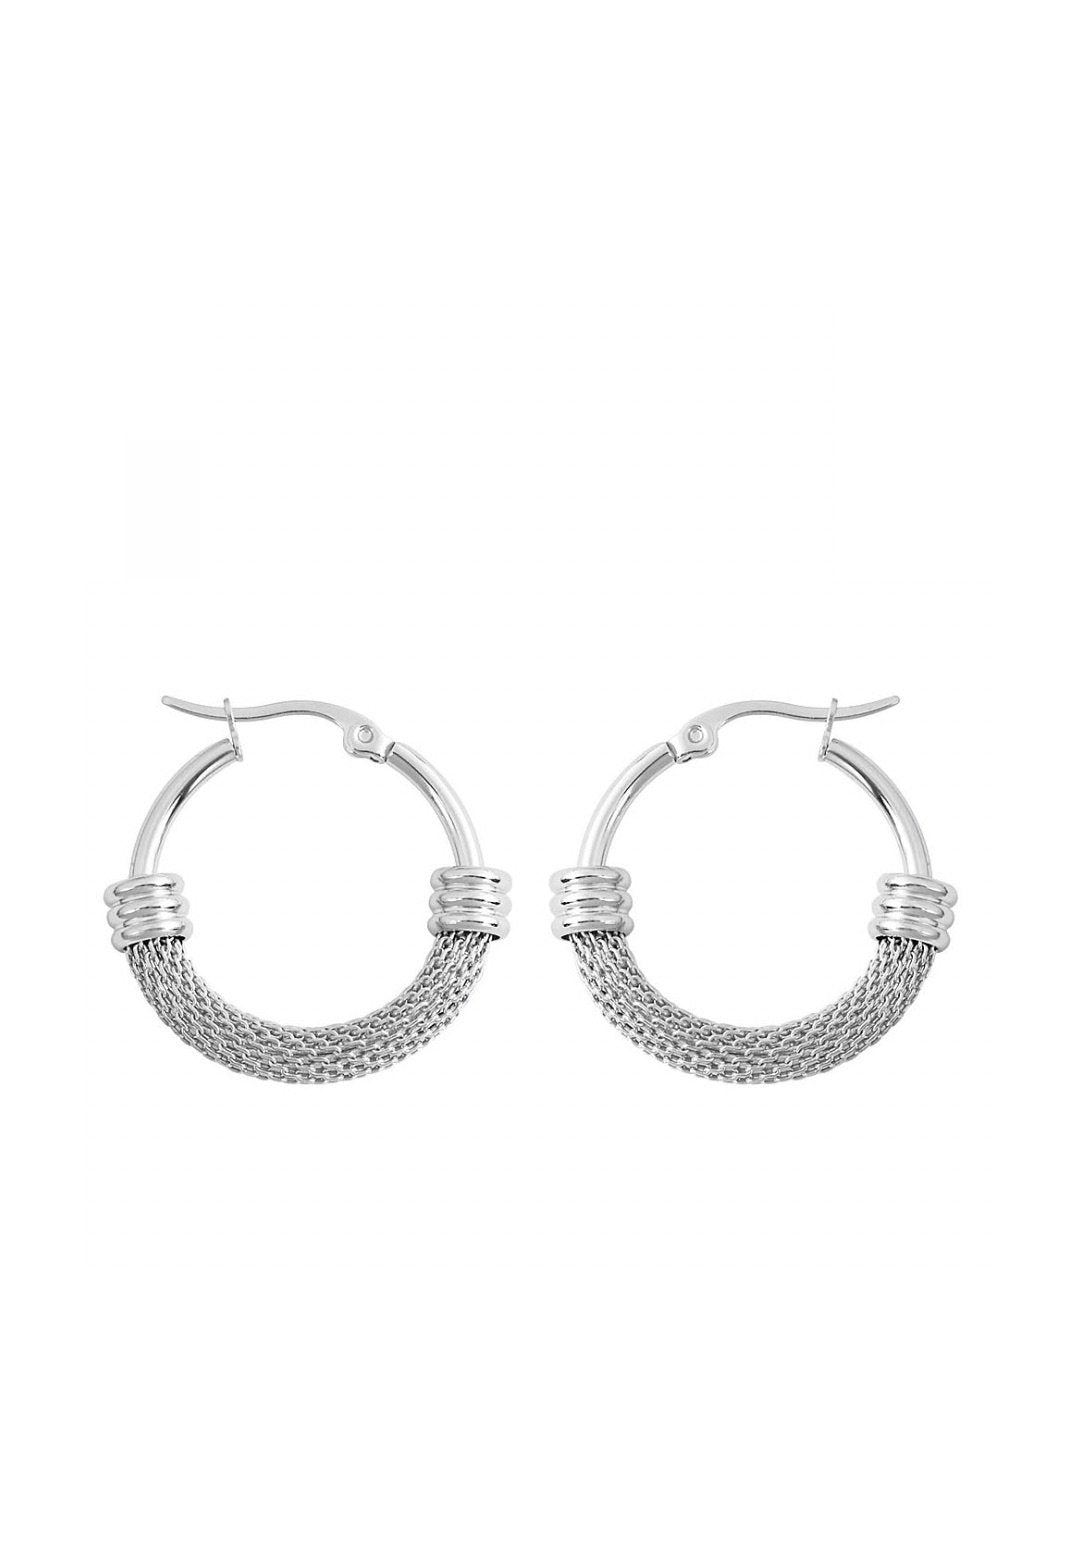 Silver Mesh And Polished Hoop Earrings